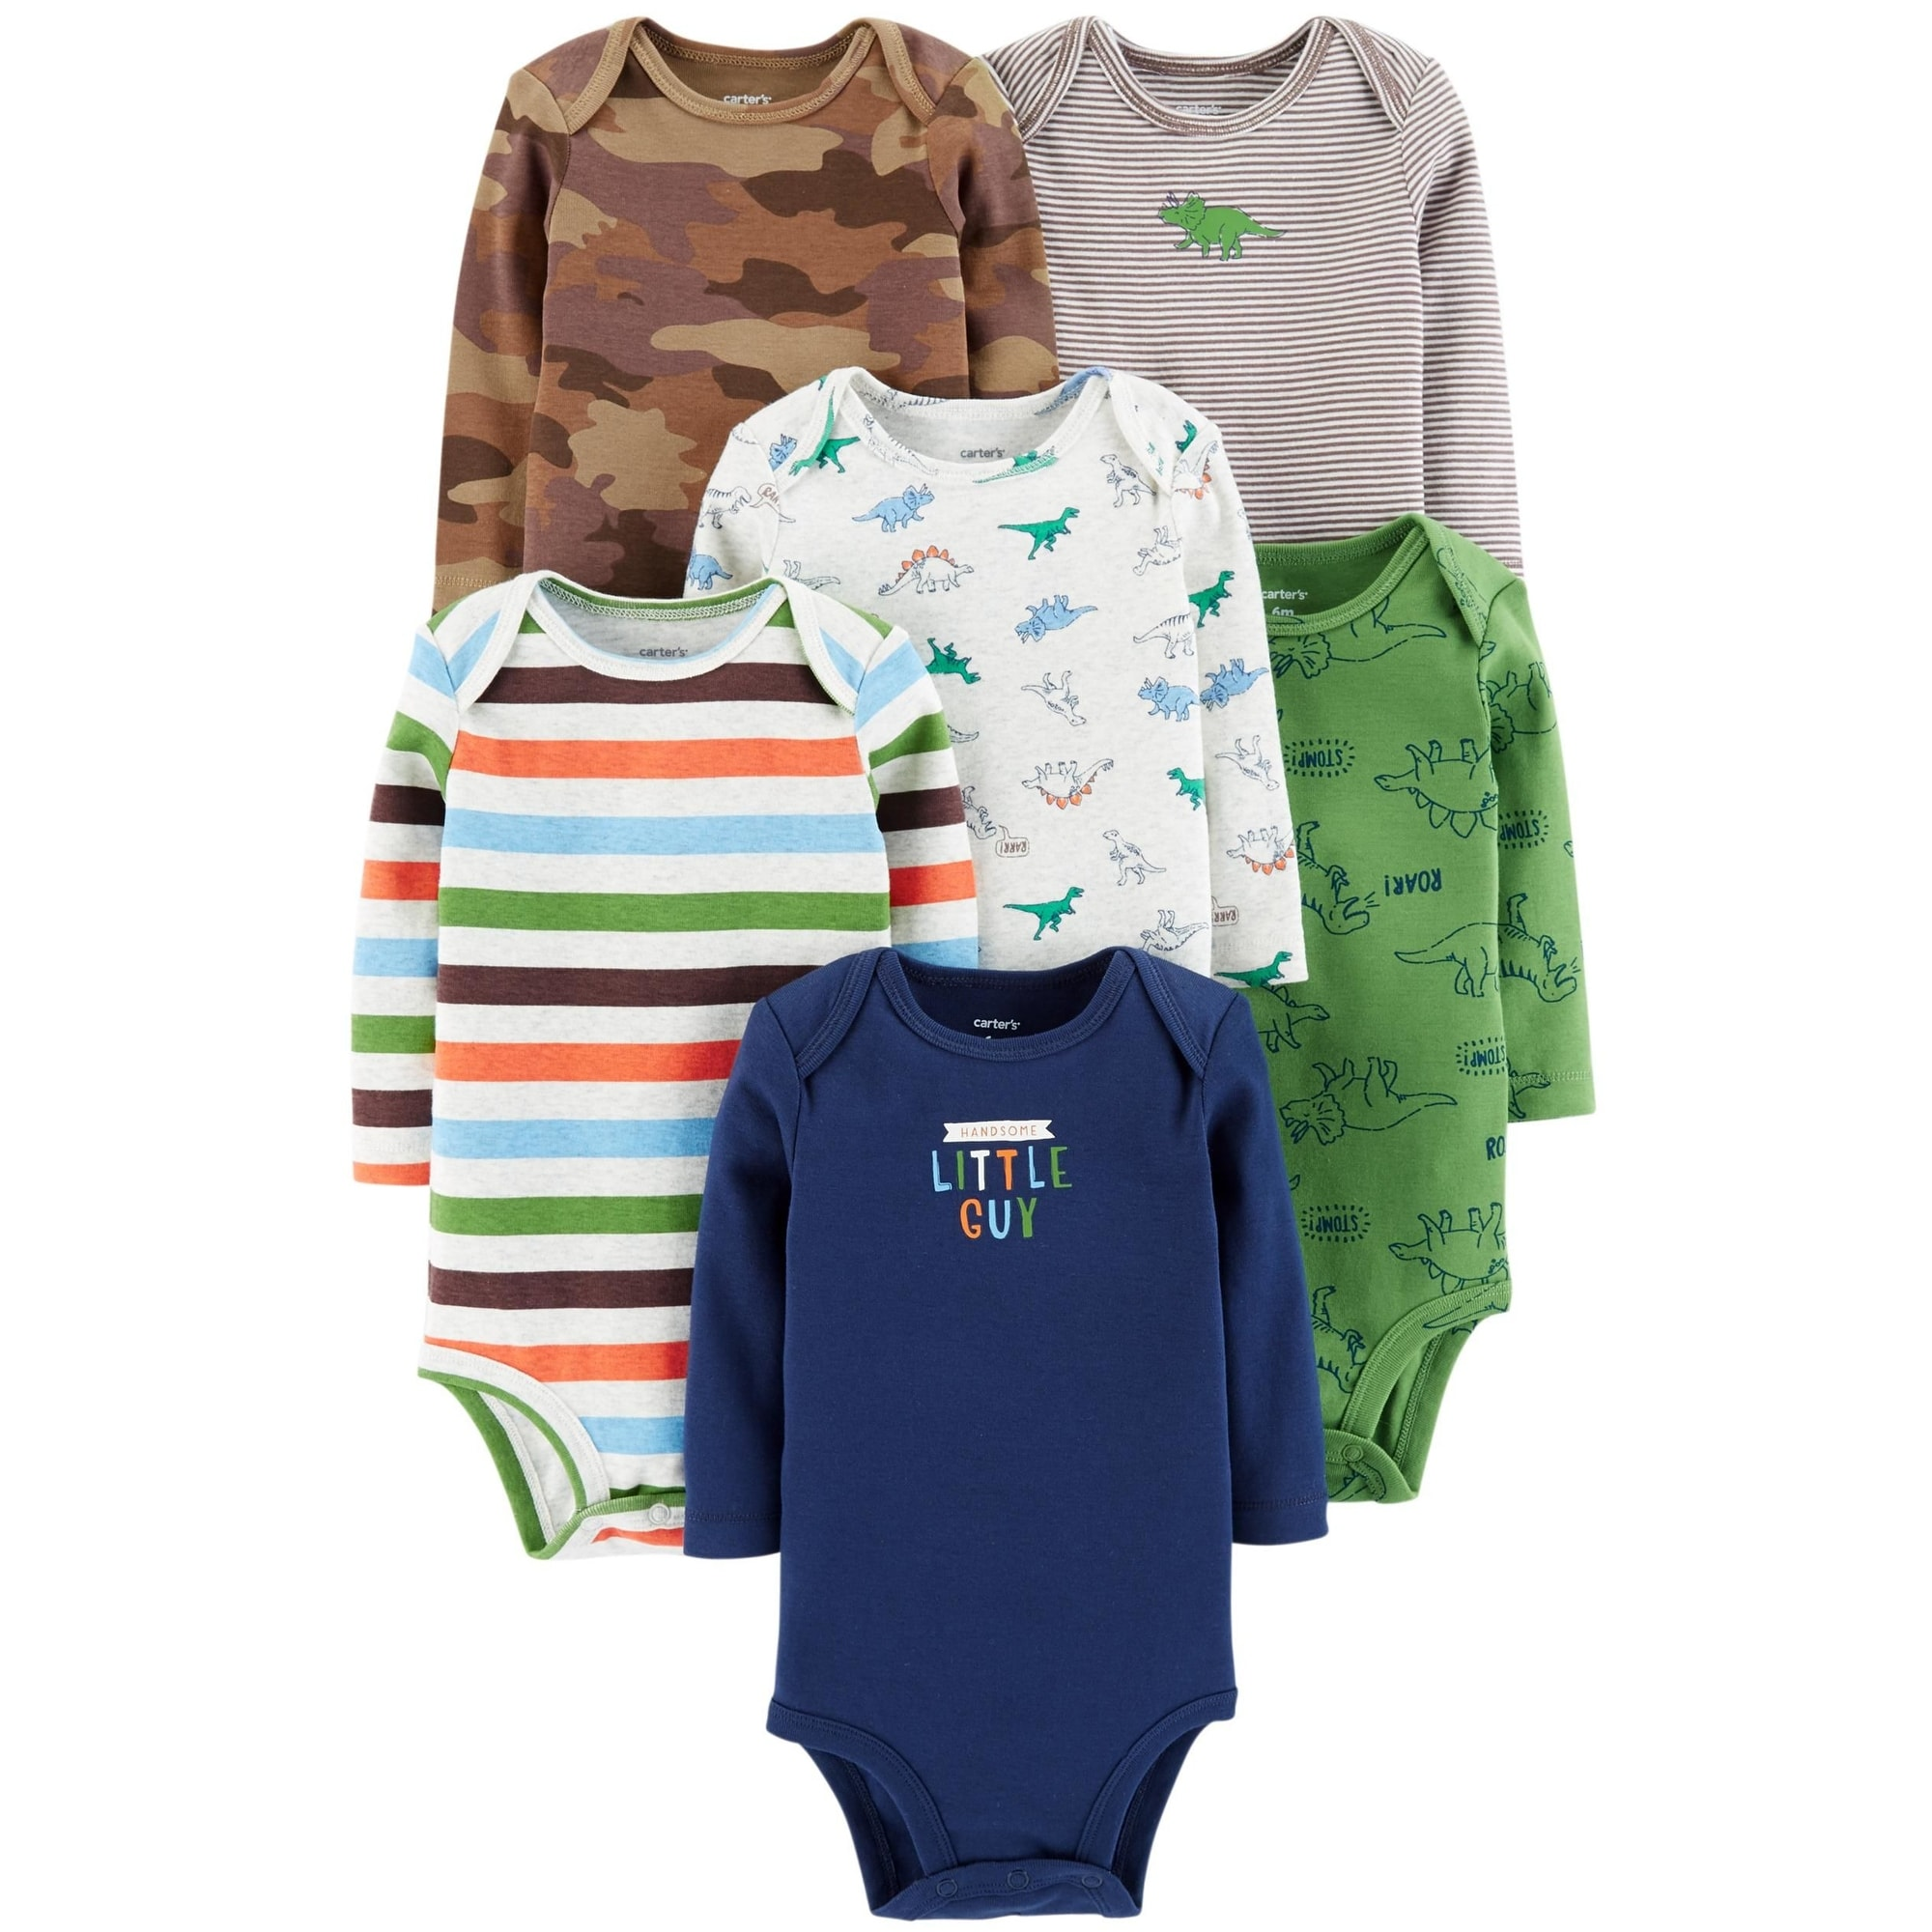 92c2cb6bc Baby Clothing | Shop our Best Baby Deals Online at Overstock